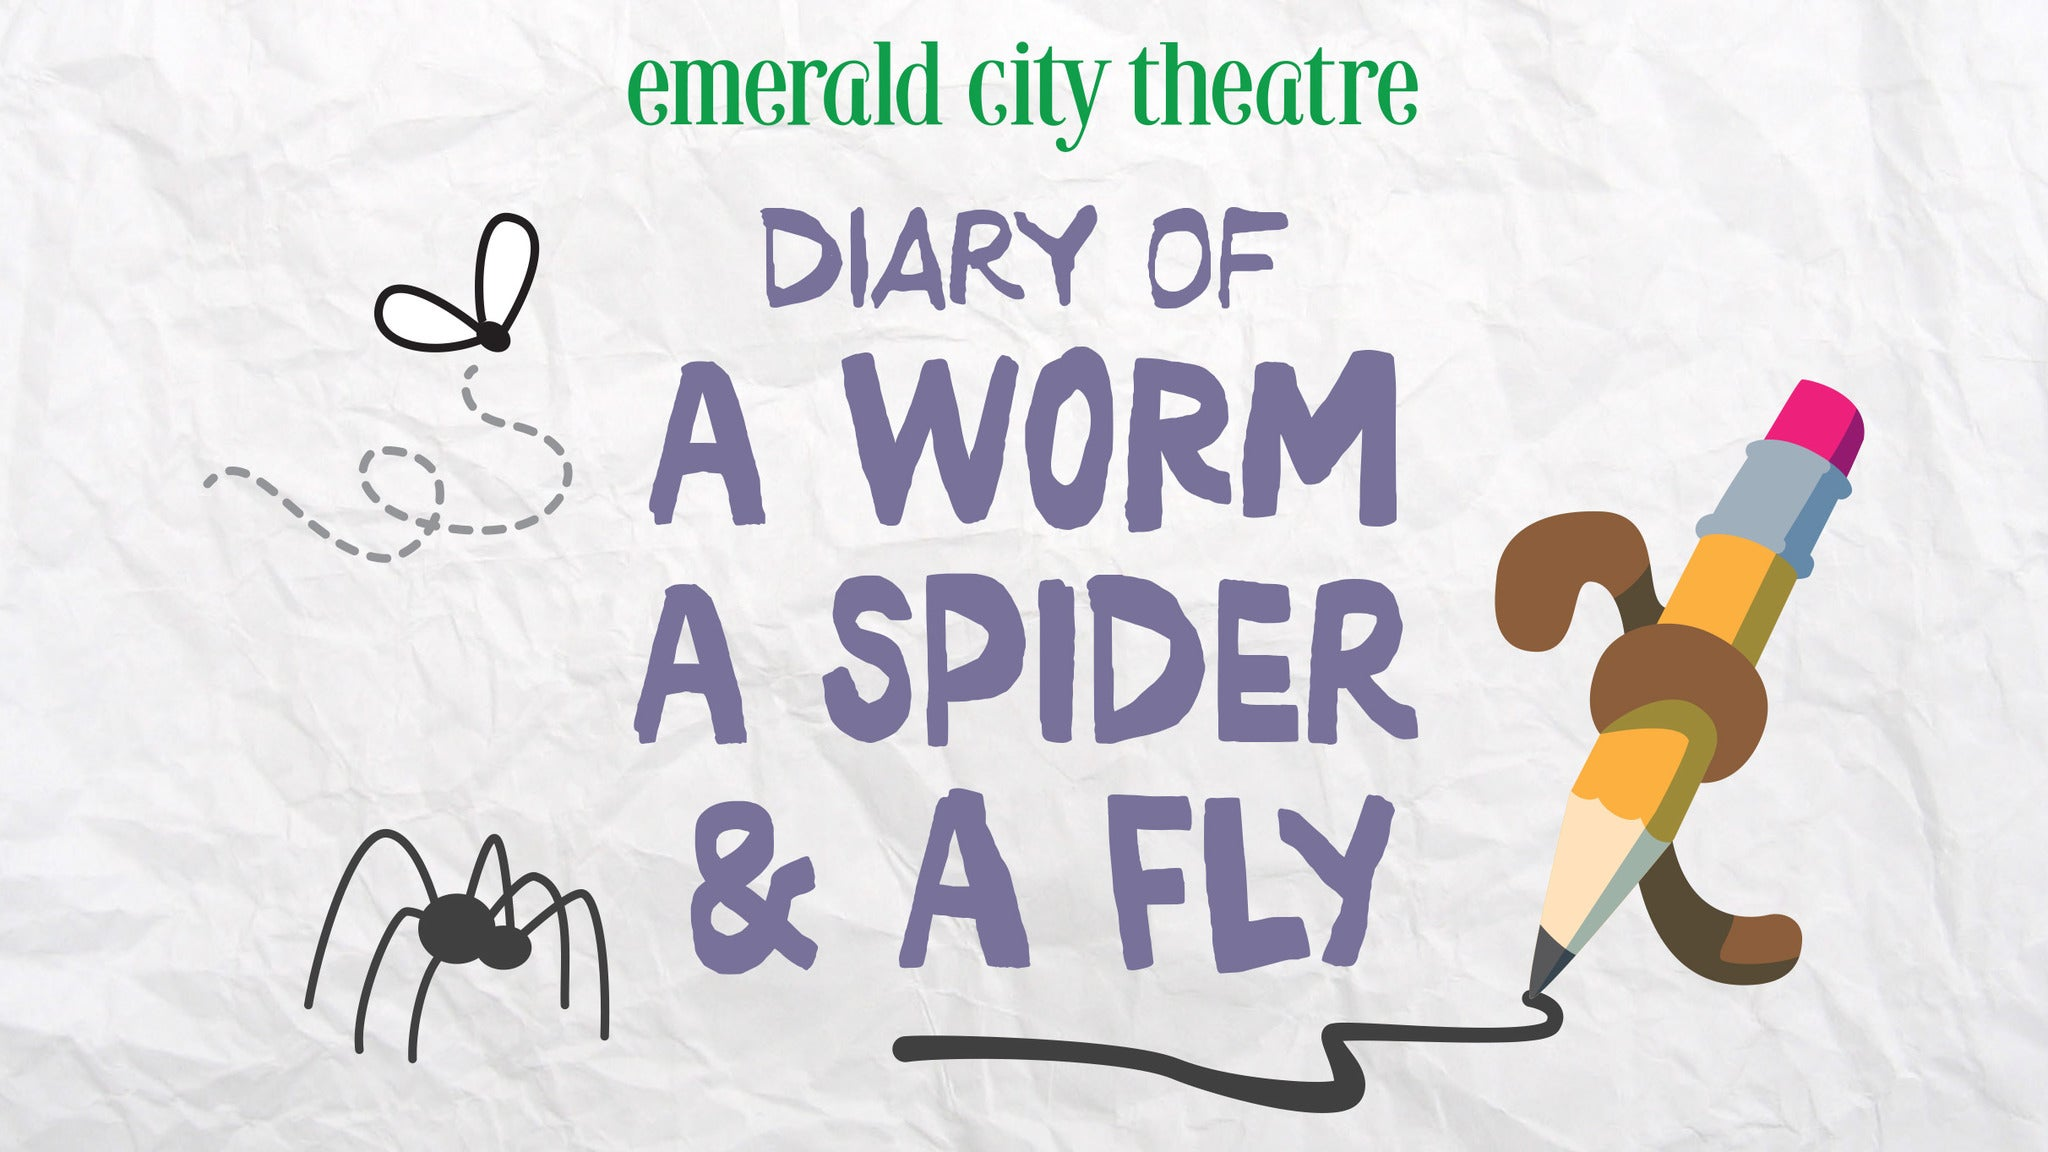 SORRY, THIS EVENT IS NO LONGER ACTIVE<br>Emerald City Theatre: Diary of a Worm, a Spider & a Fly - Chicago, IL 60614